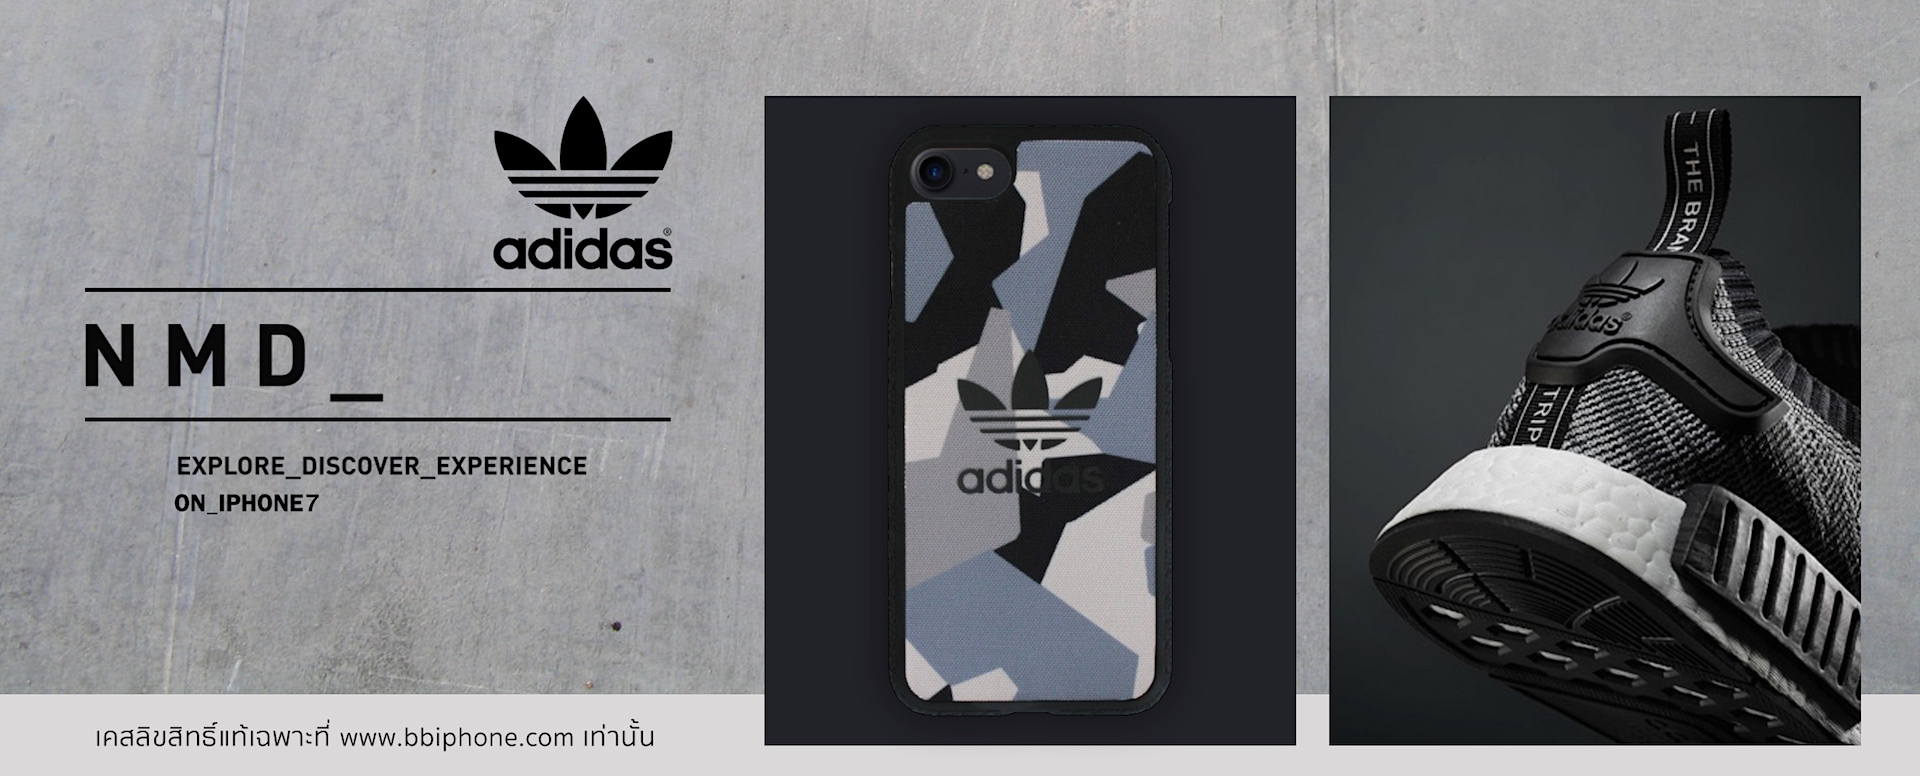 adidas-nmd-iphone-7